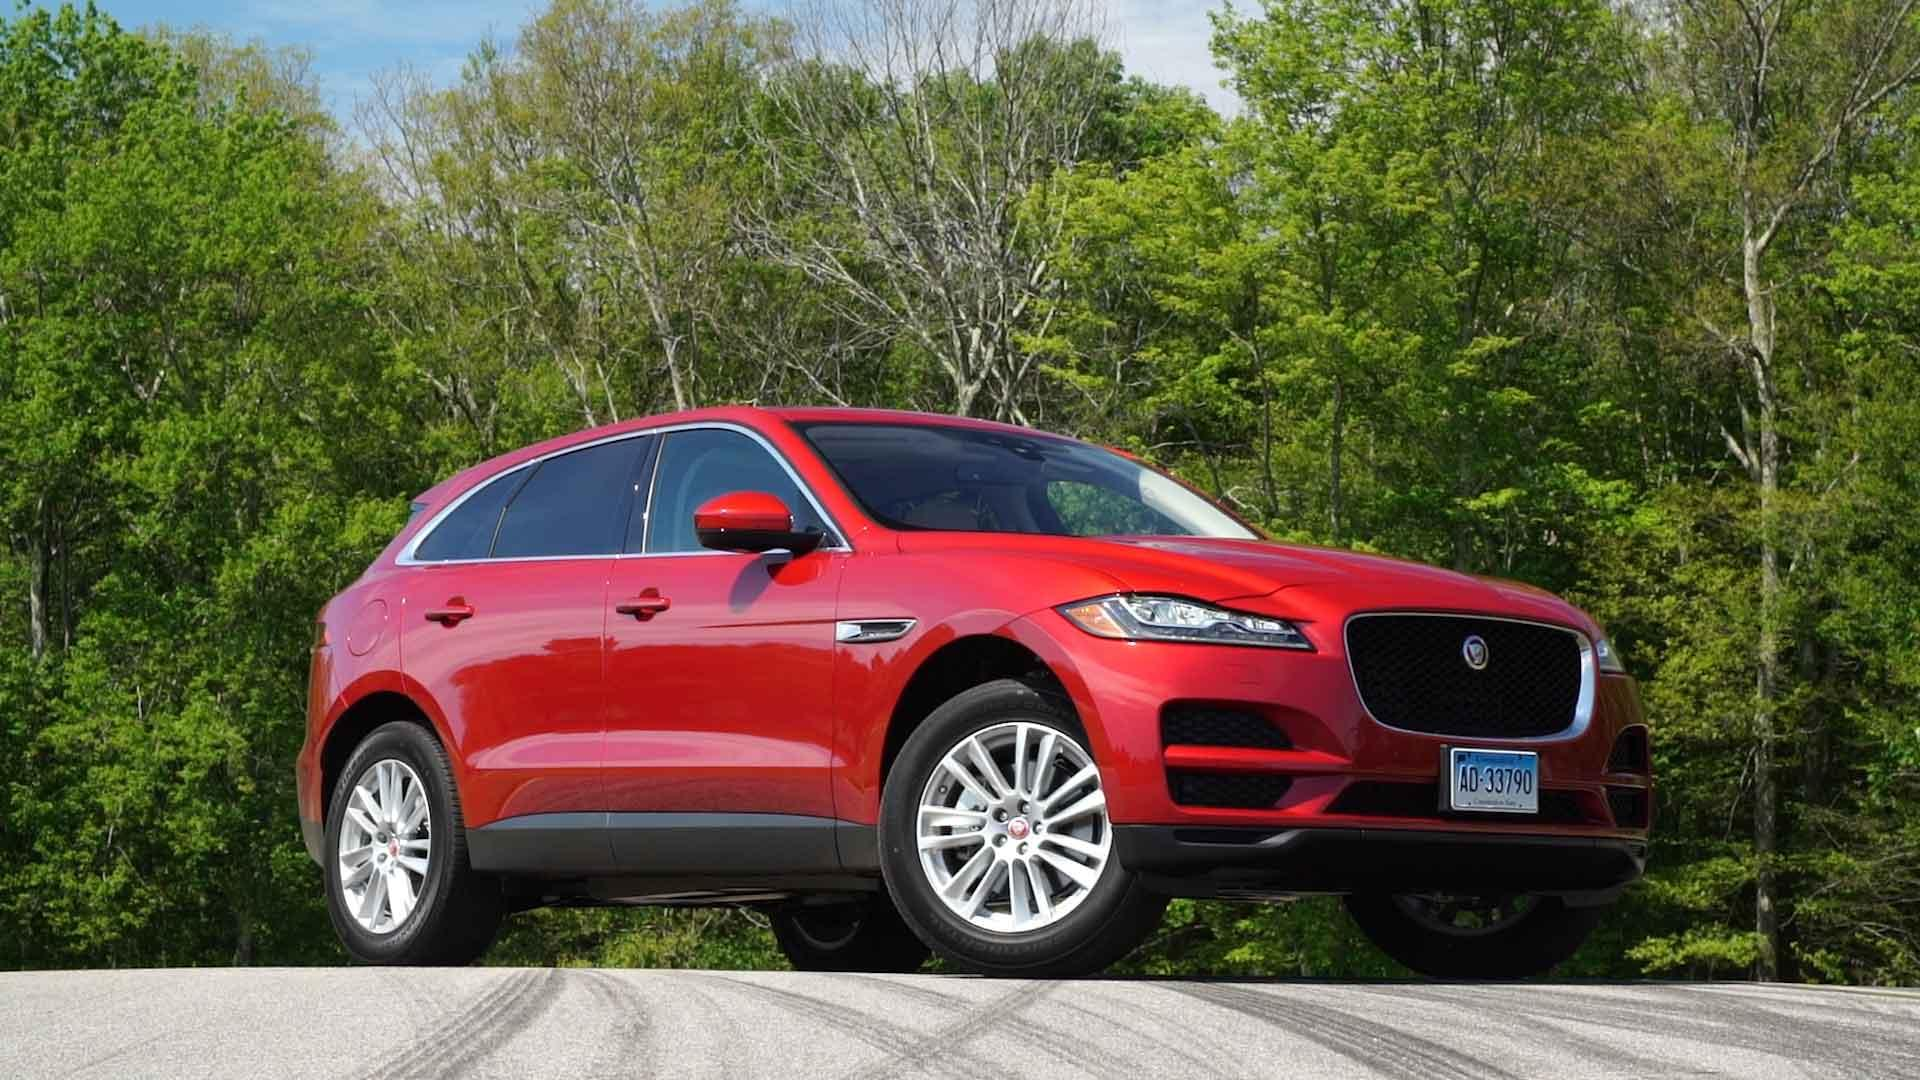 Baby cribs reviews consumer reports - 2016 Jaguar Xf Review Though Jaguar S Athletic New Suv Is Supercharged And Agile Its Loud Exhaust Is A Sour